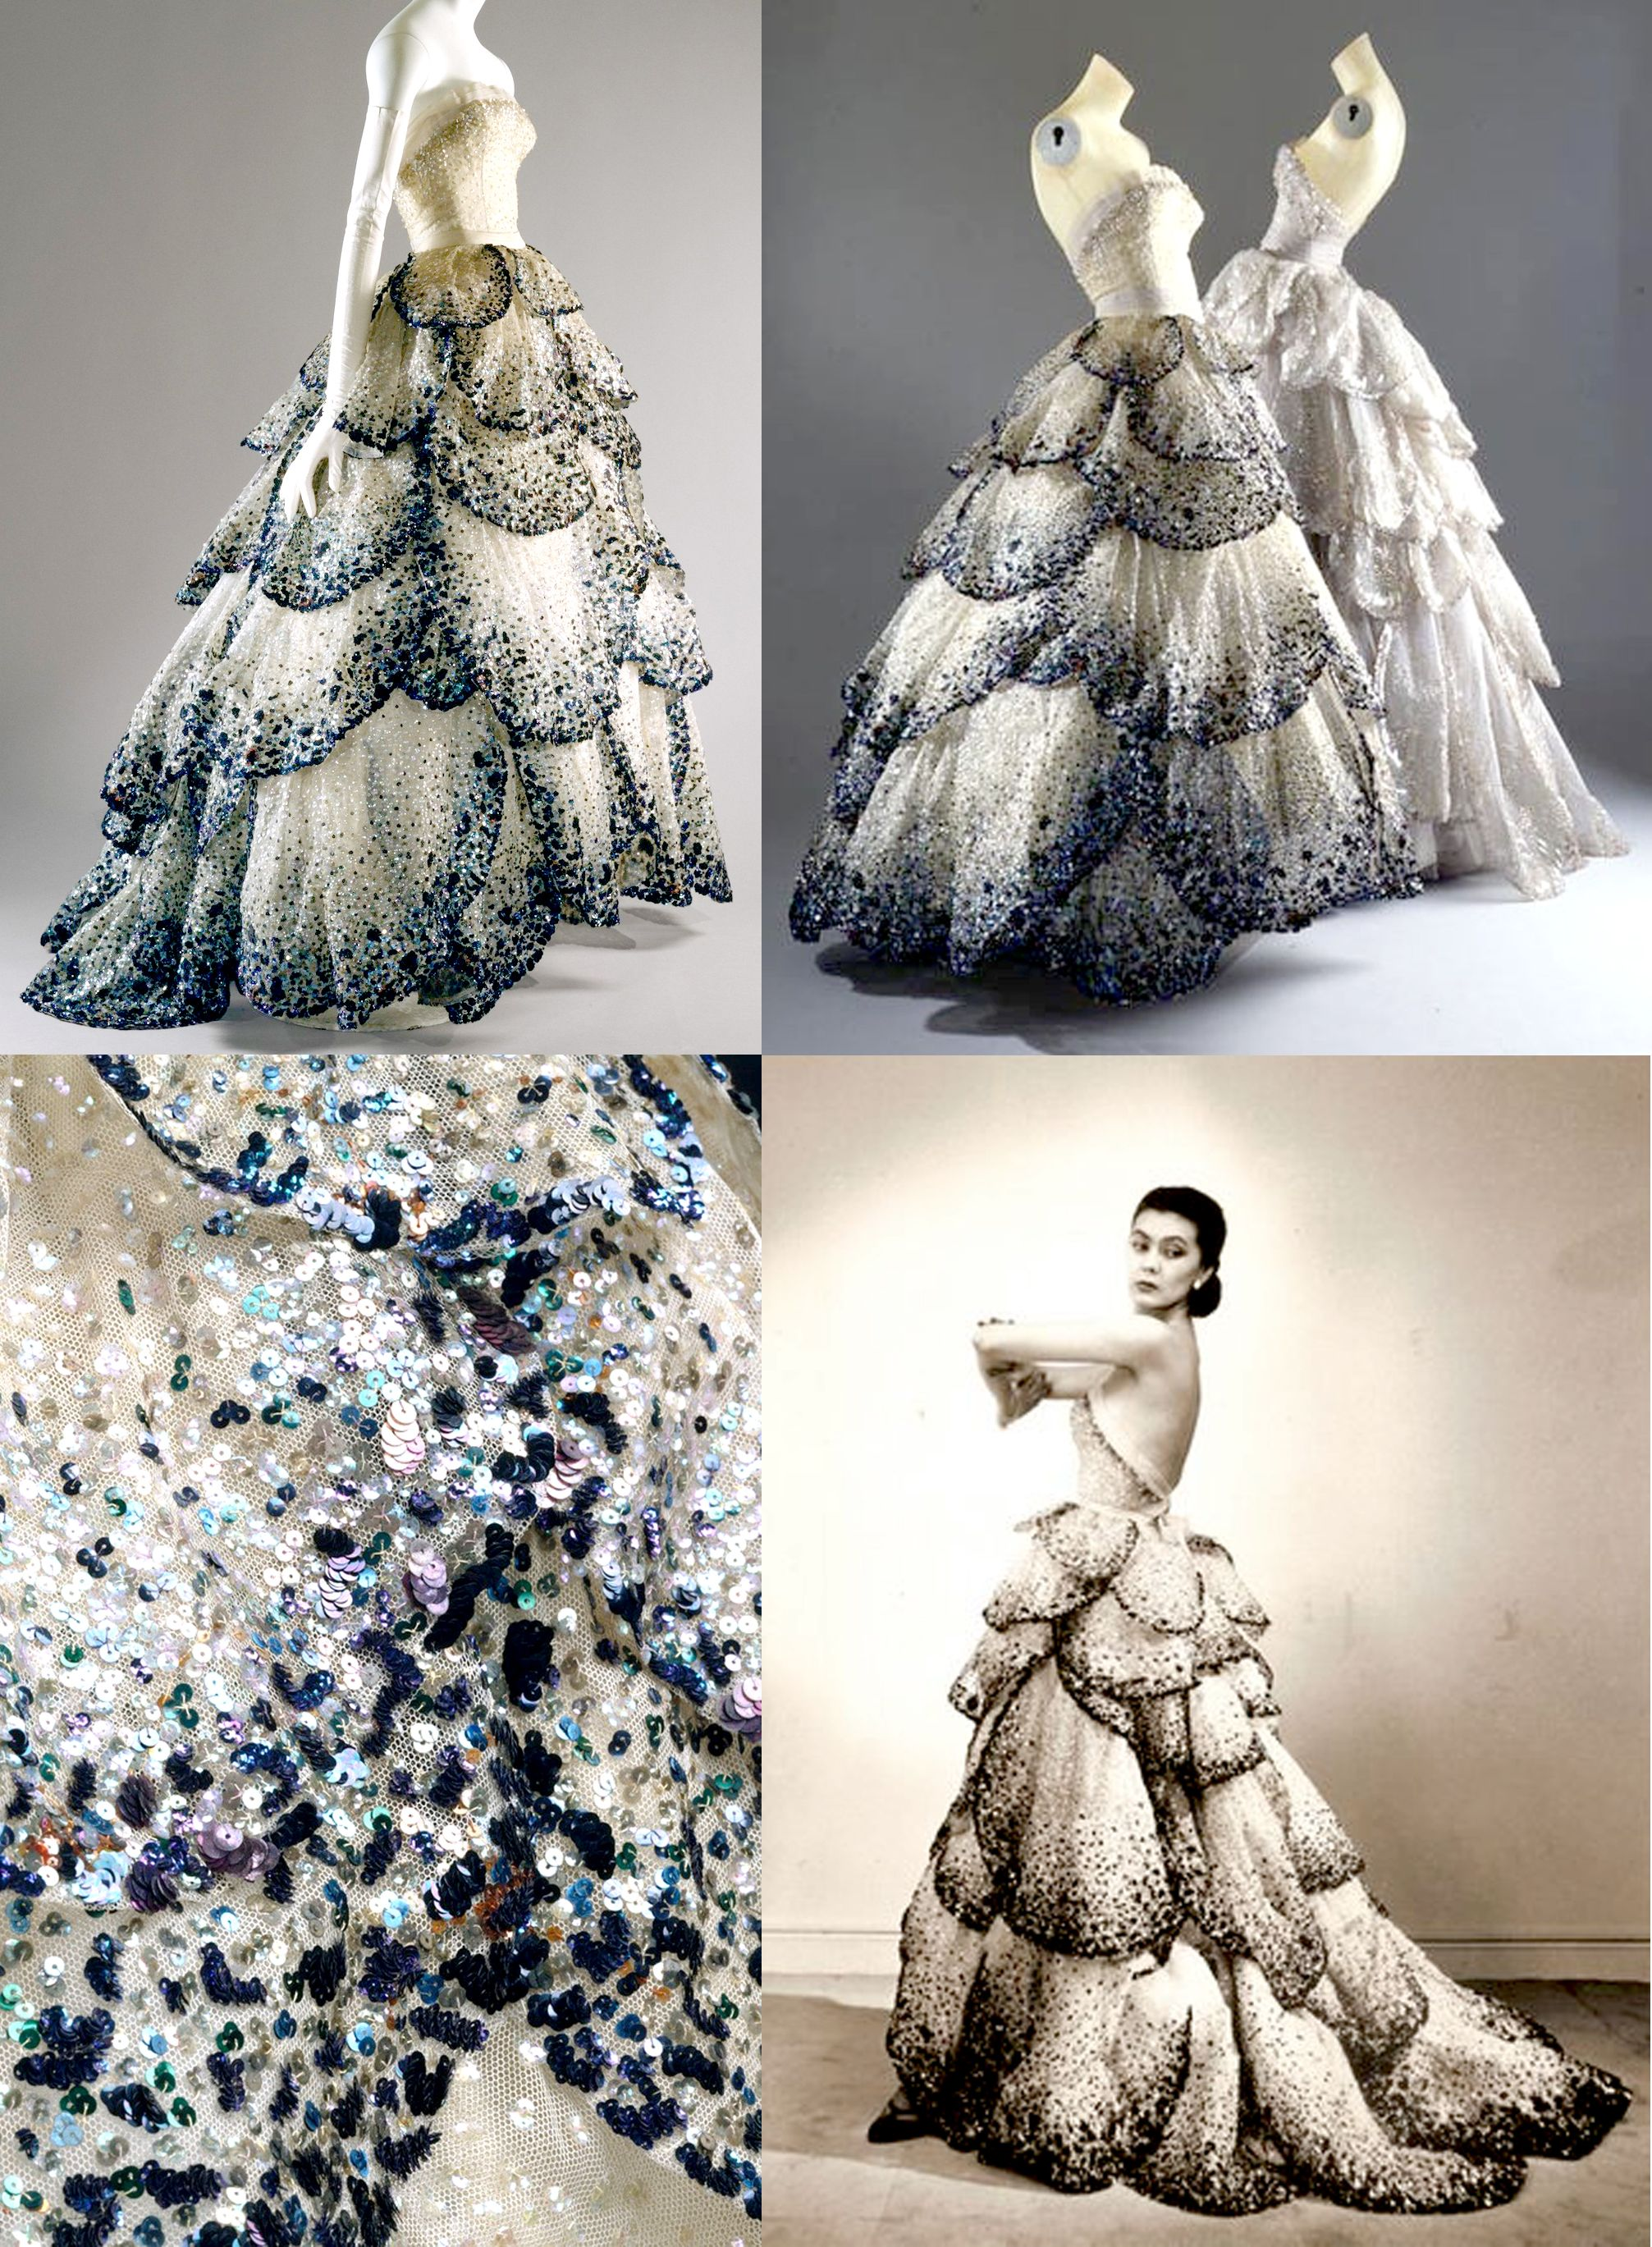 Christian Dior 1950's Junon petal sequin dress. Pale–blue silk net embroidered with iridescent blue, green, and rust sequins